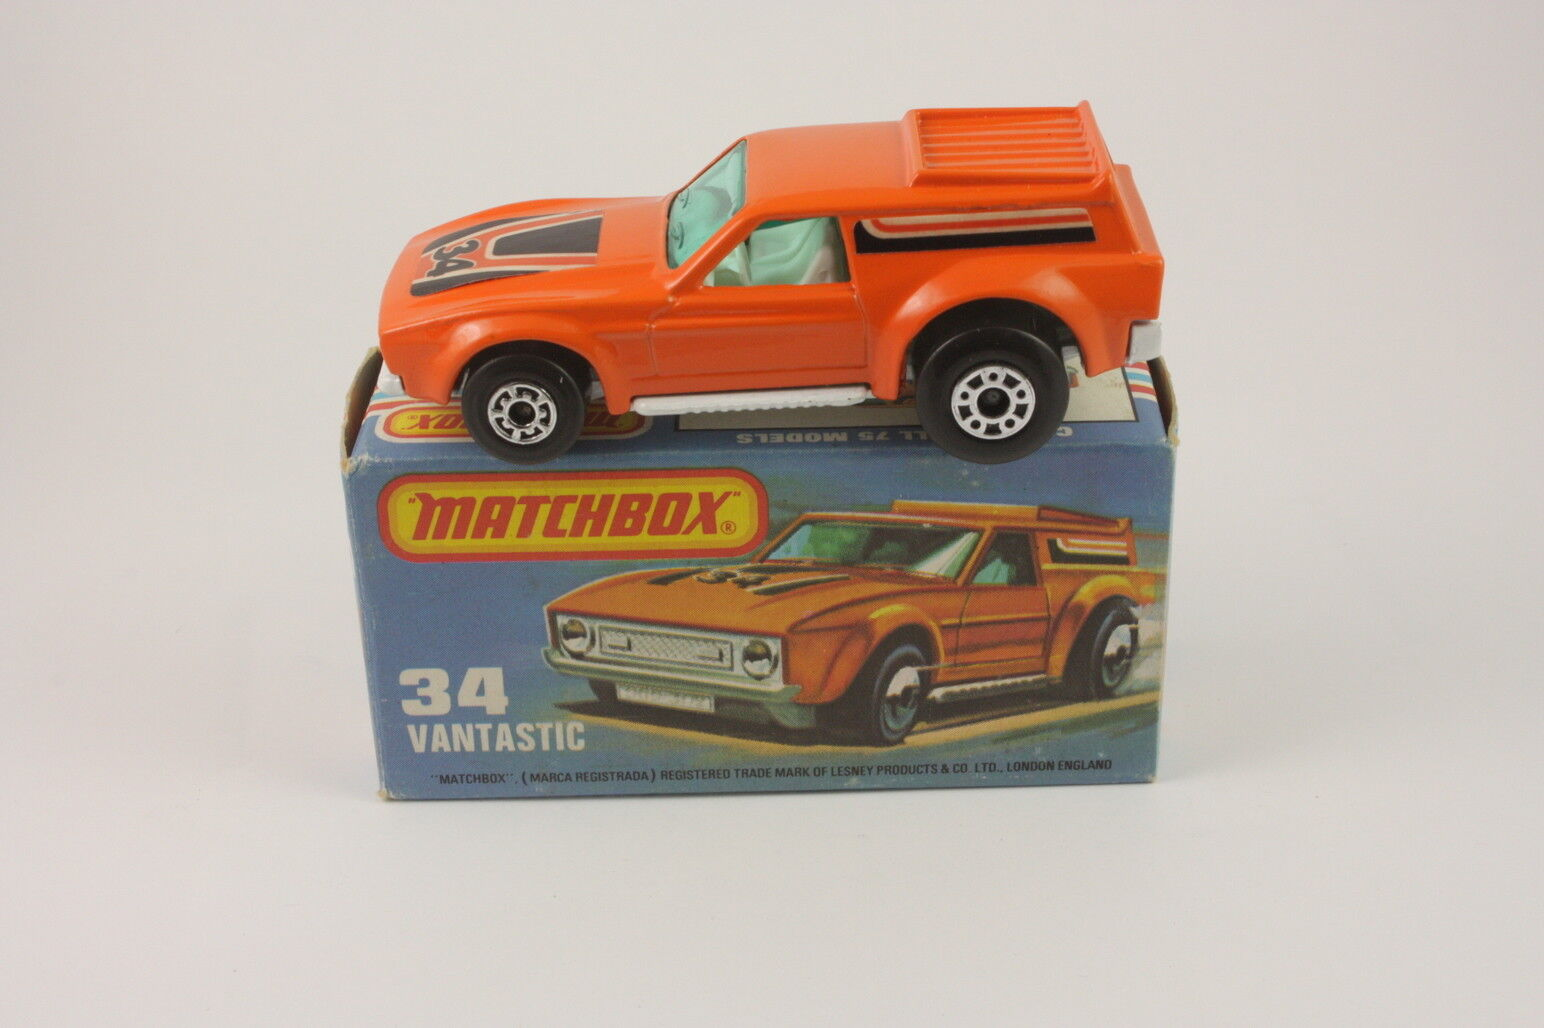 Matchbox Superfast No. 34 Vantastic MIB mint boxed vintage Lesney